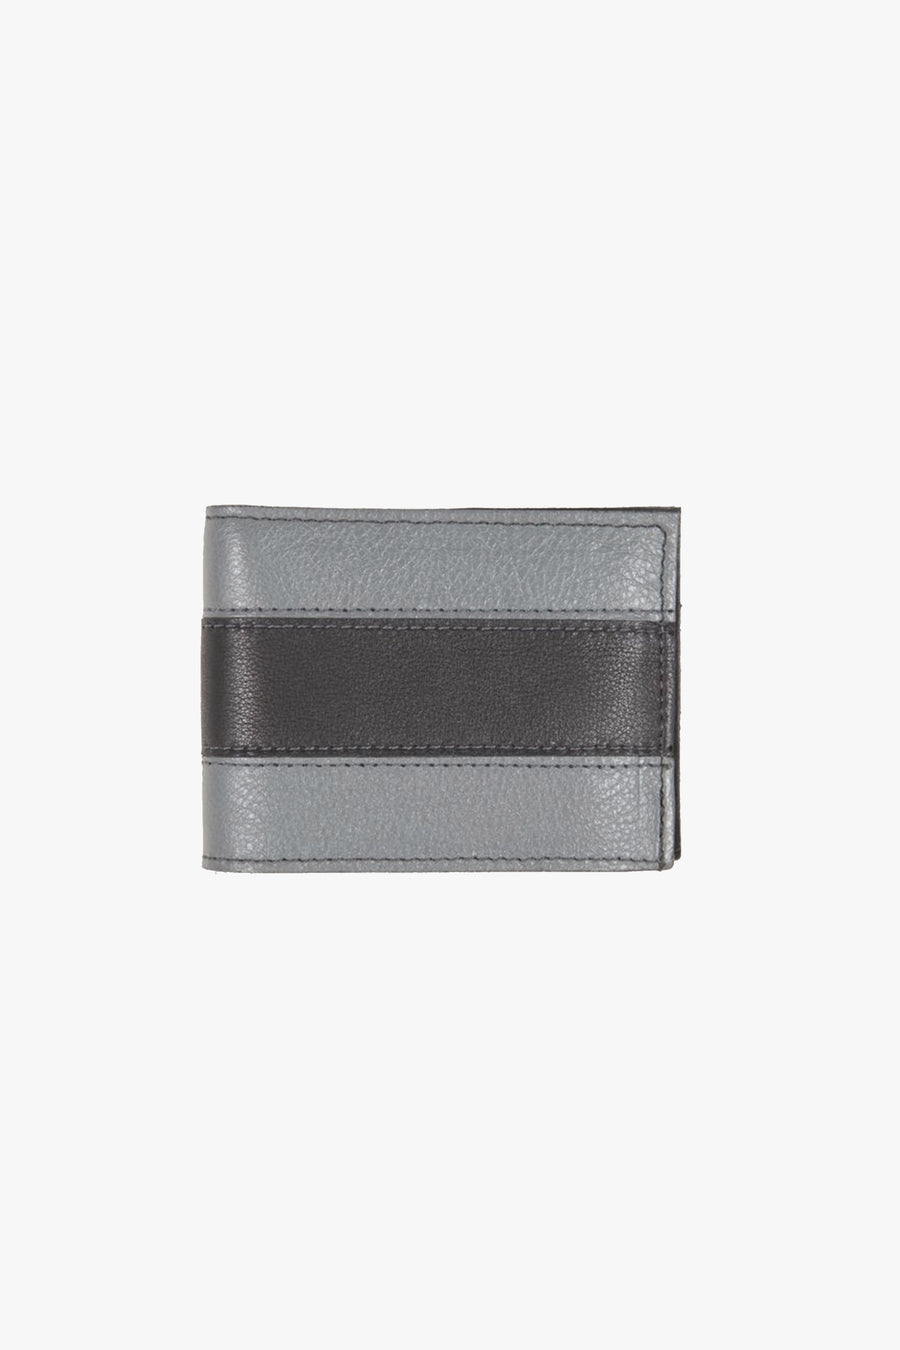 BI-FOLD WALLET - Kelly Cole USA